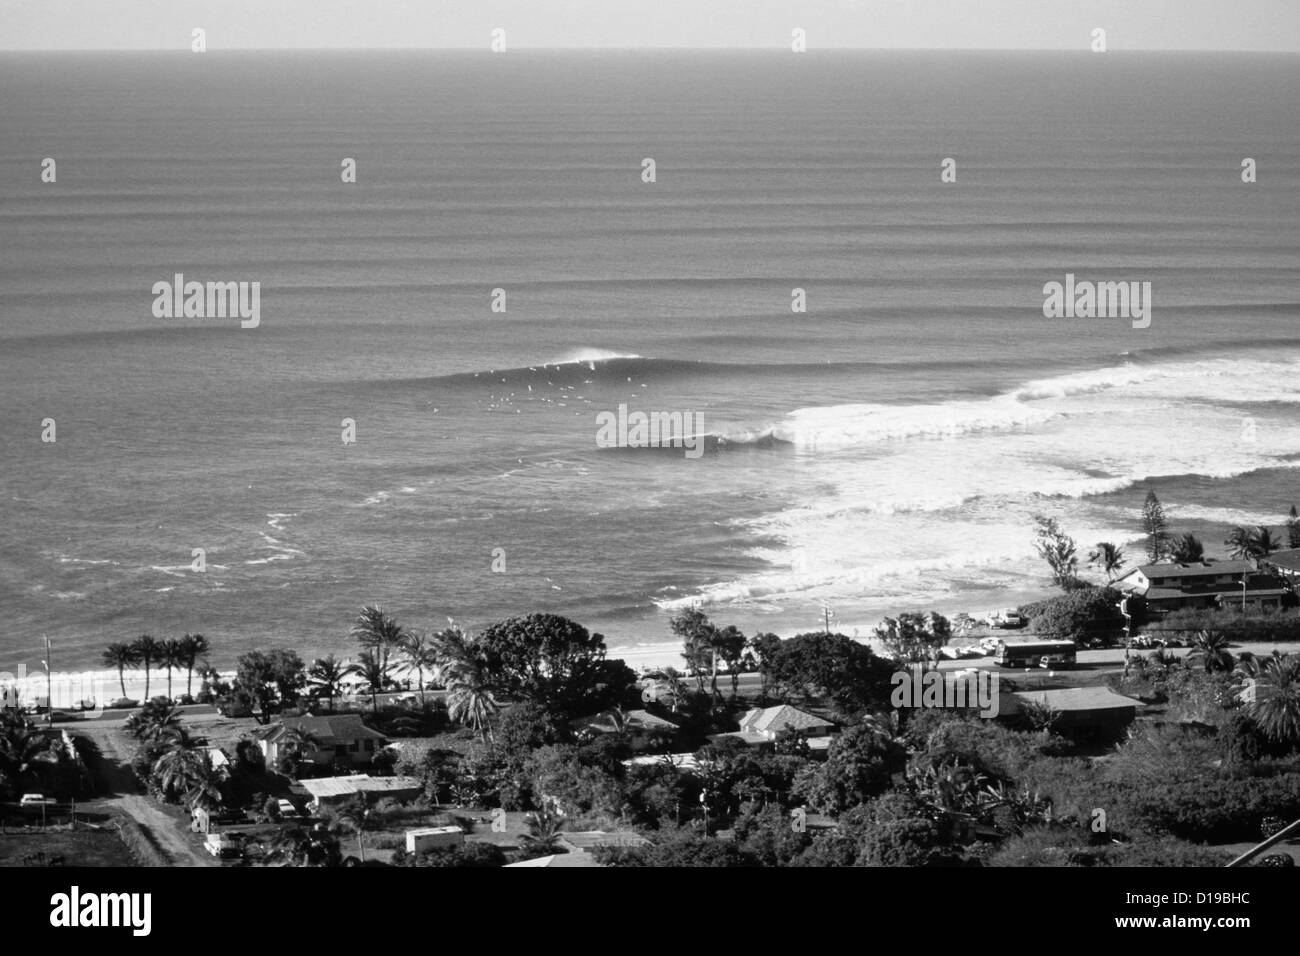 Hawaii Oahu North Shore Sunset Beach Aerial View Of Community And Shorebreak